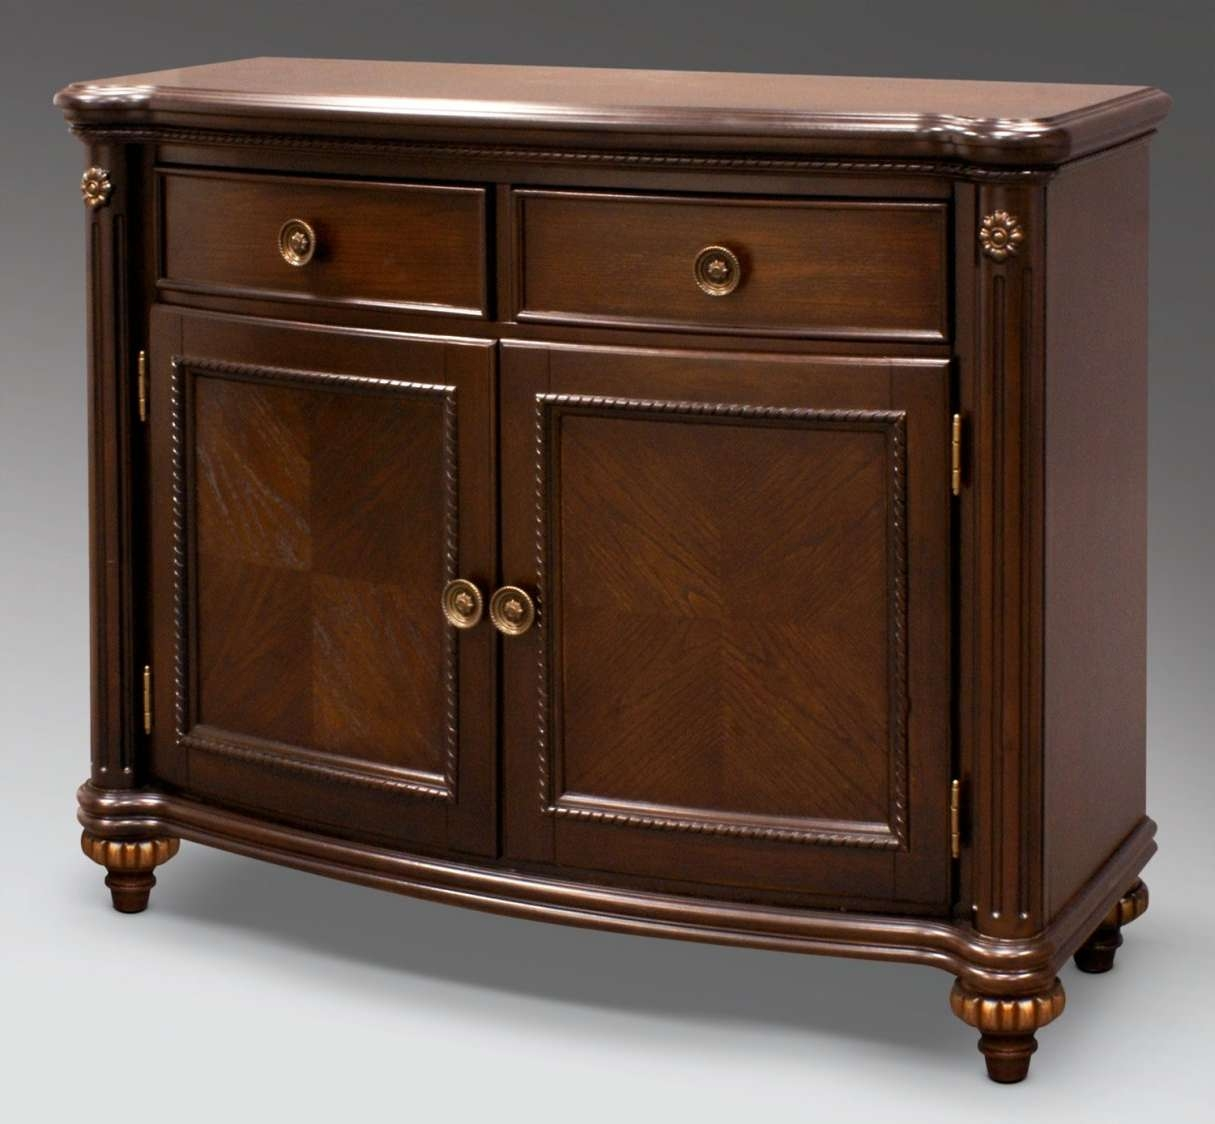 Dining Sideboards And Servers | Cardealersnearyou Throughout Sideboards And Servers (View 10 of 20)